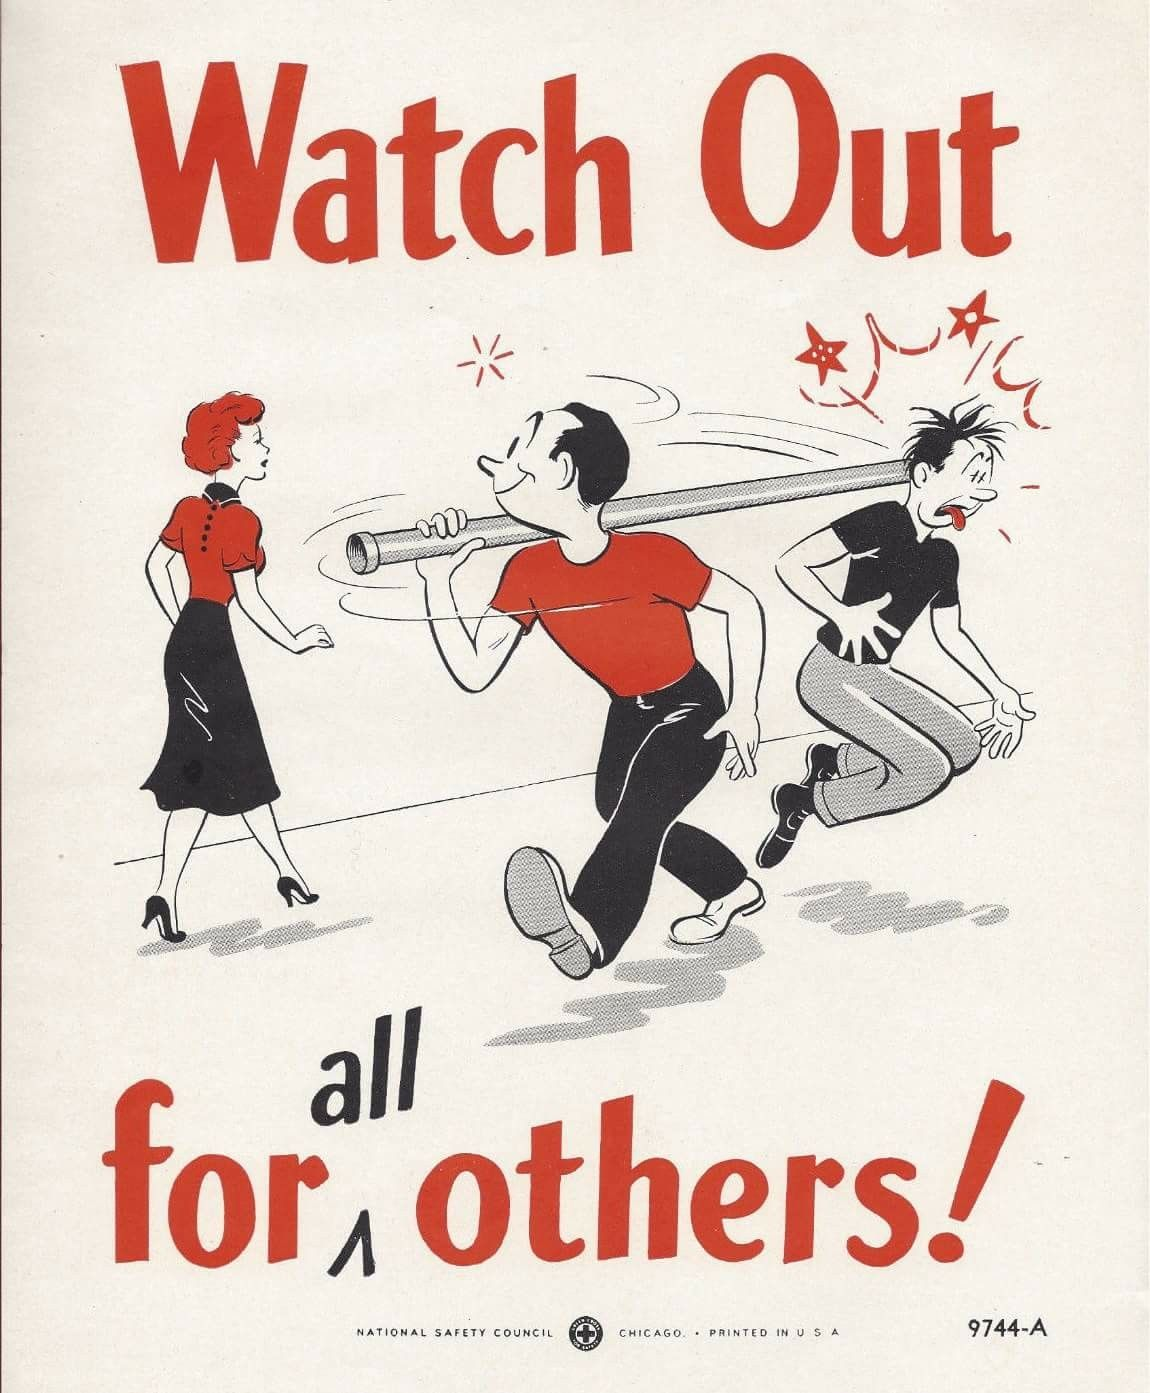 1950s Workplace Safety Poster, National Safety Council